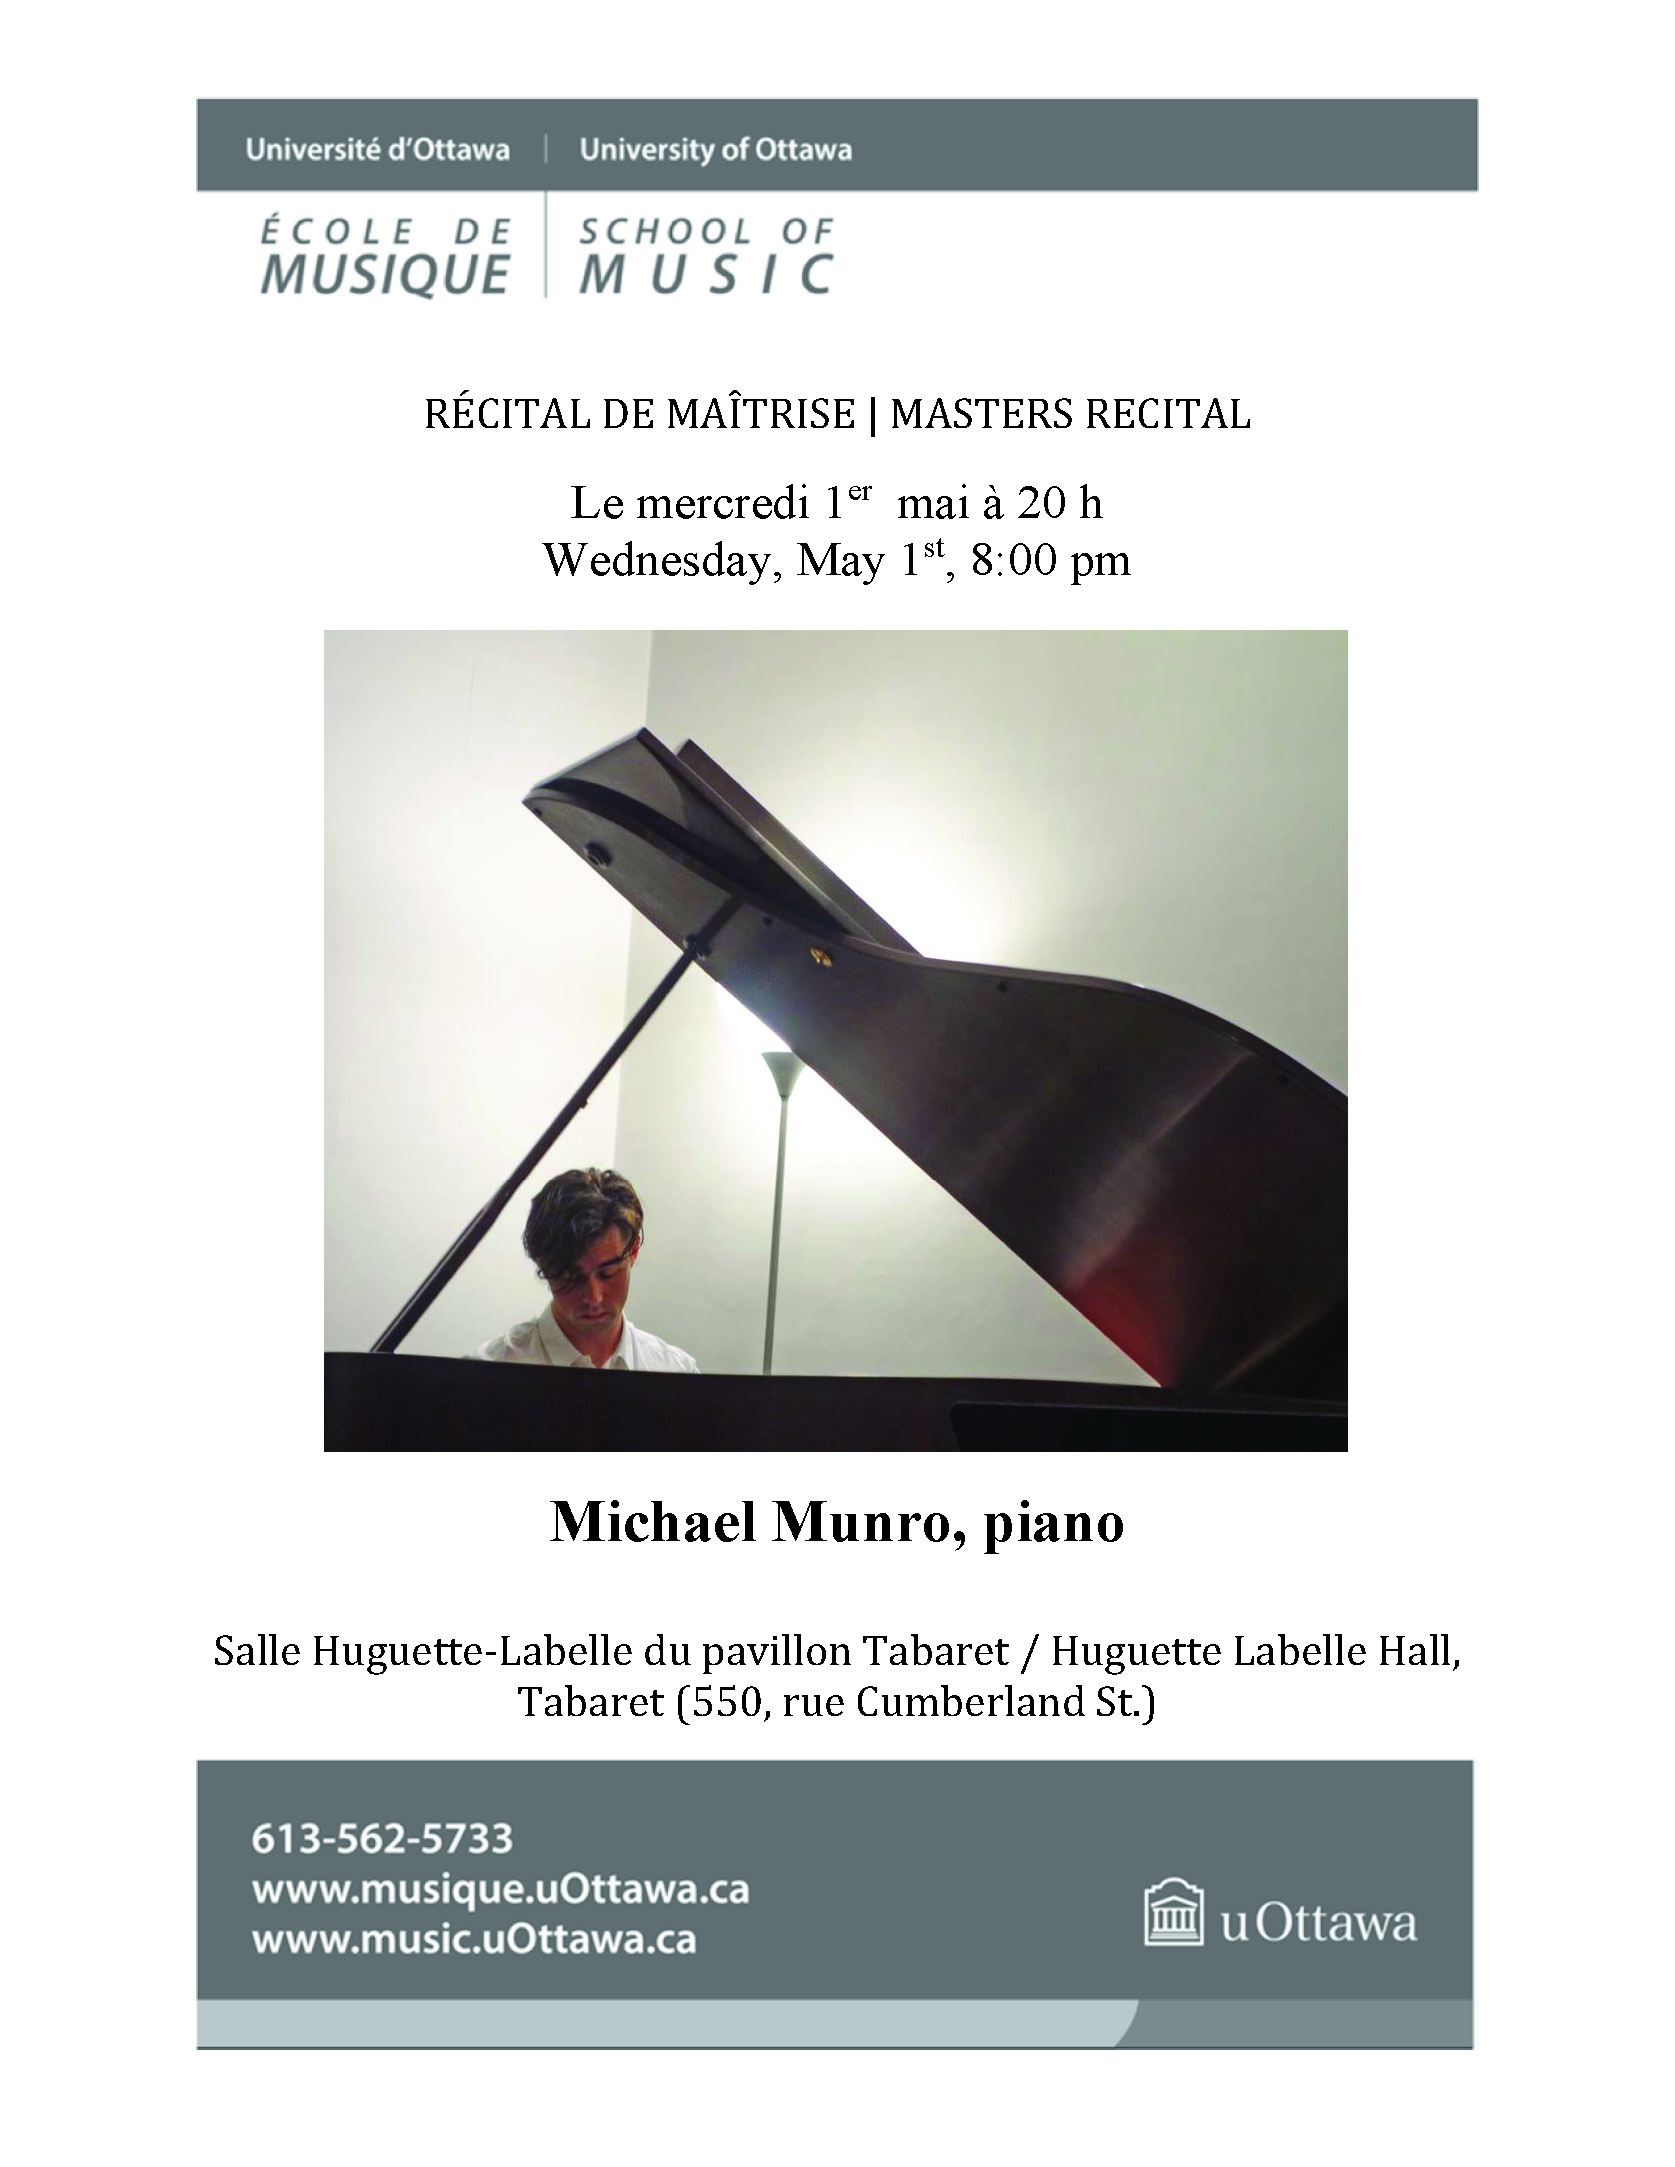 Recital program for Michael Munro, p. 1